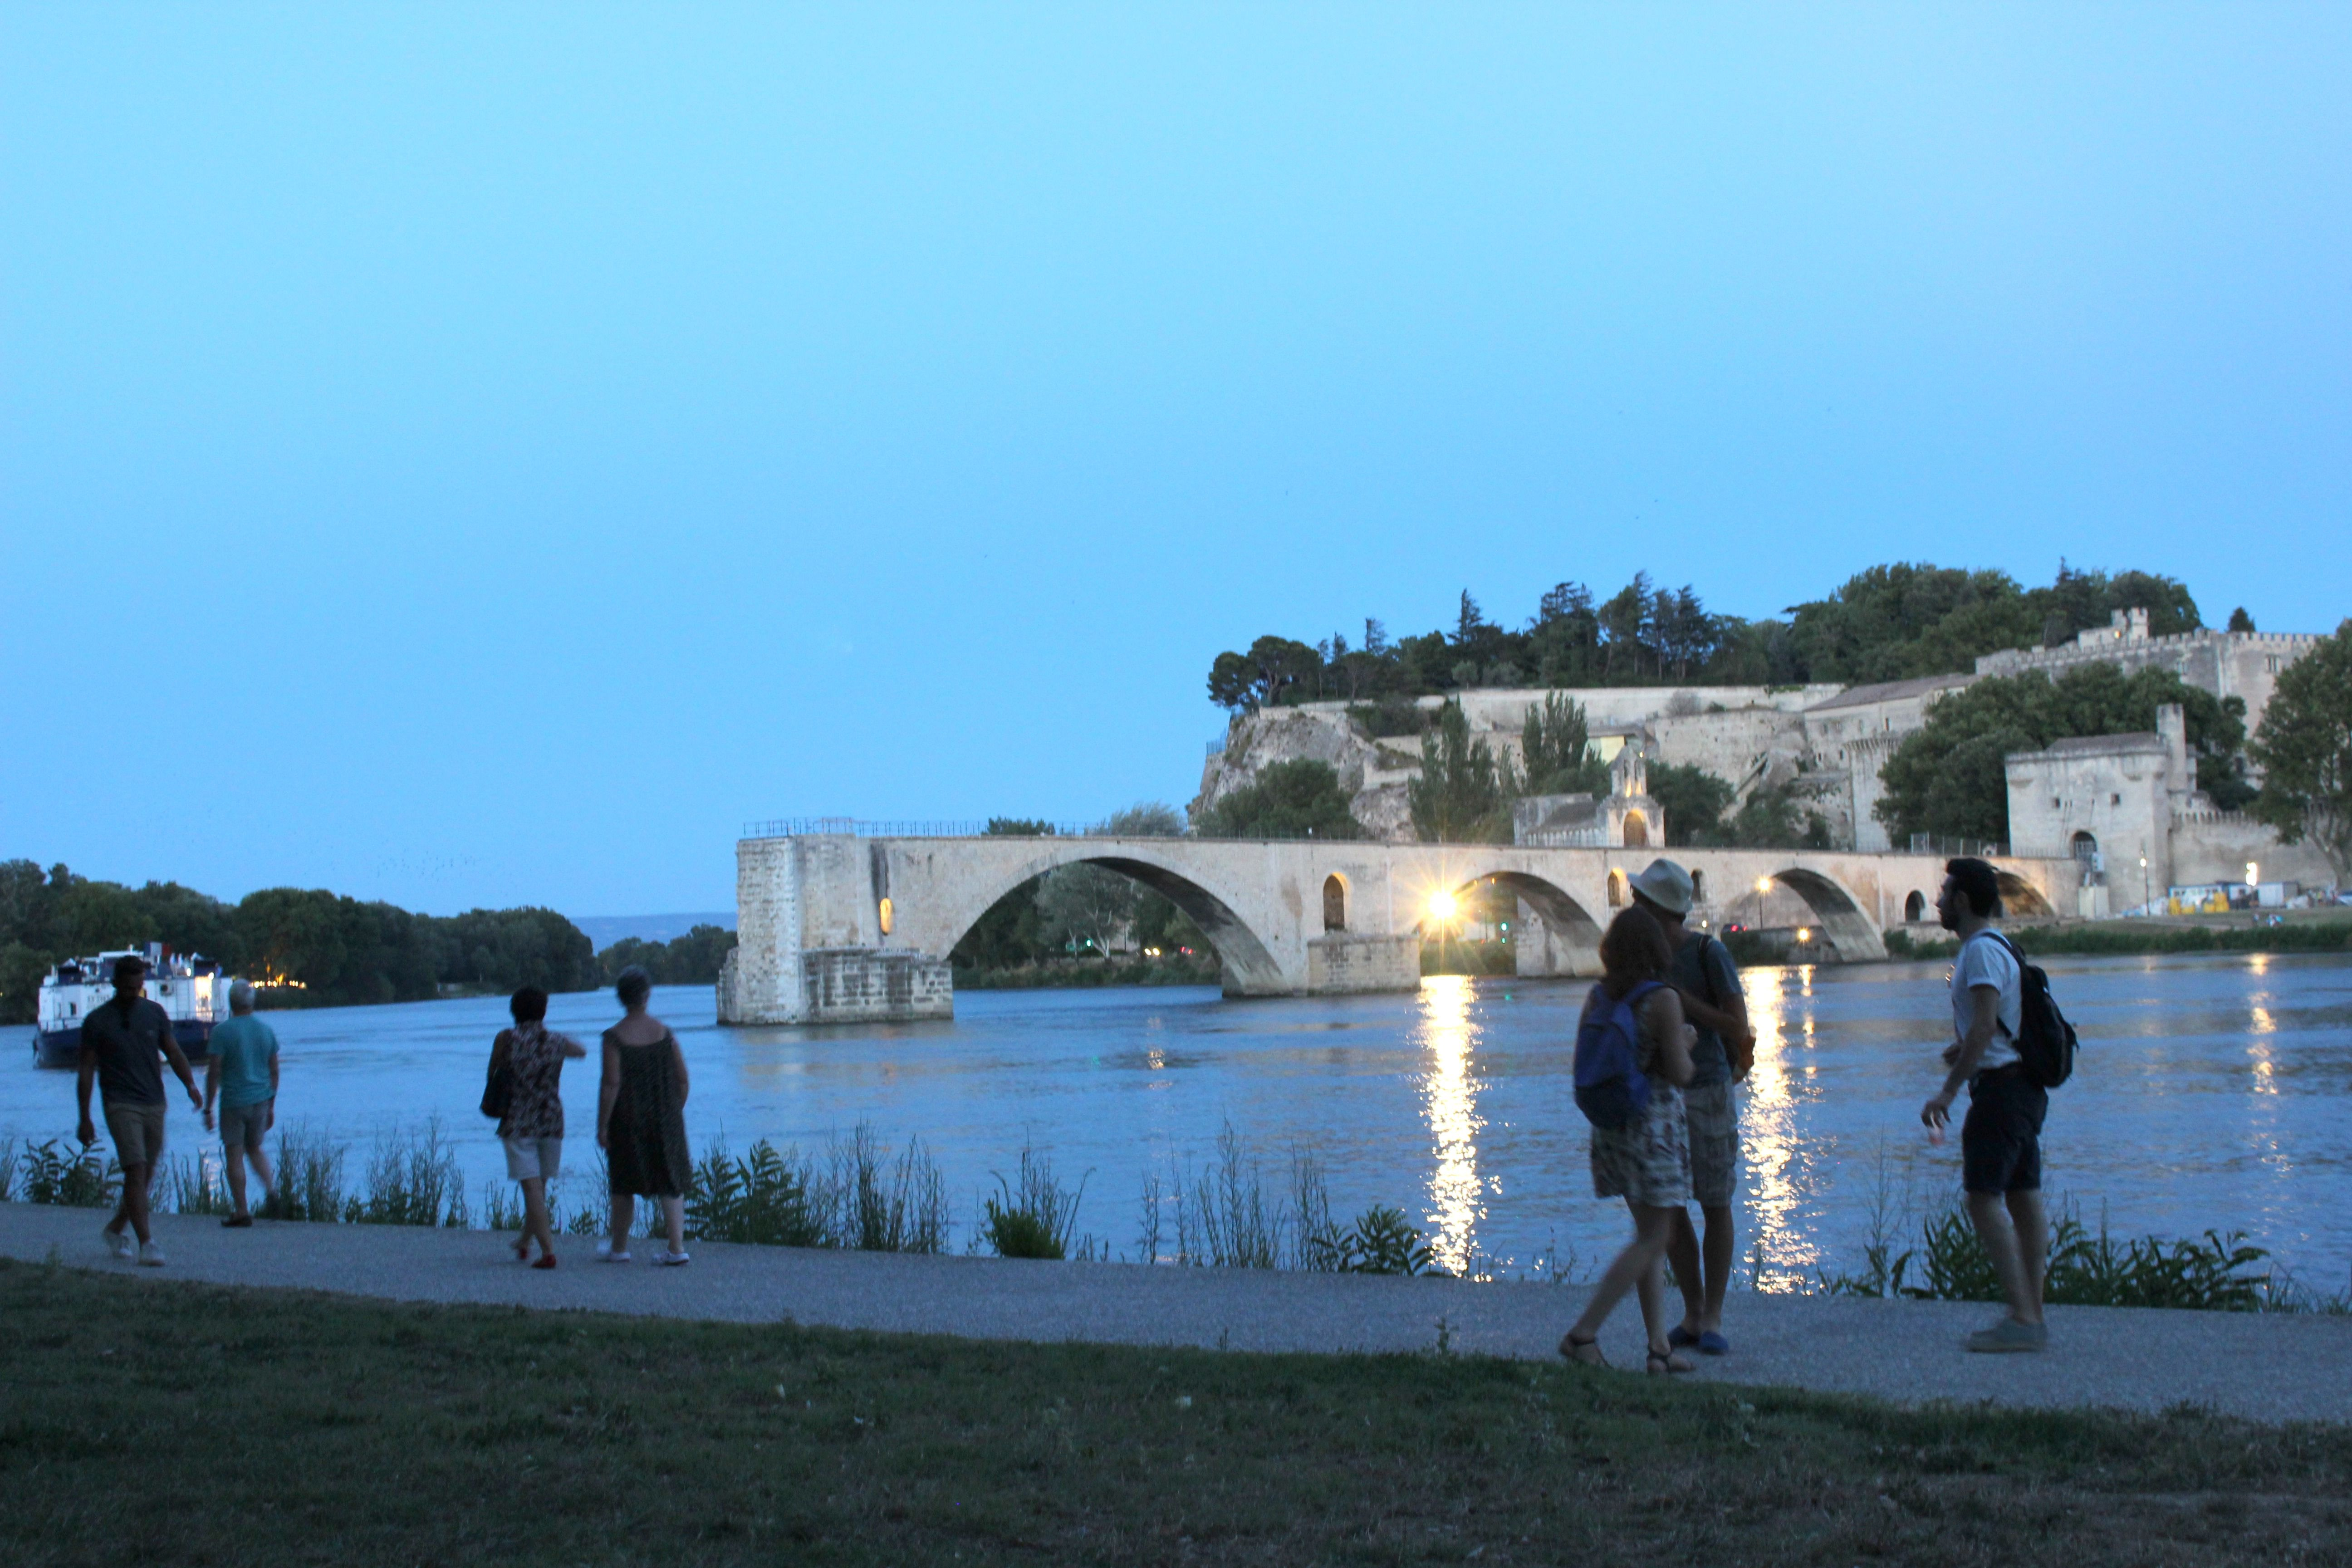 People walk alongside the water at night with the Pont St-Bénézet in the background